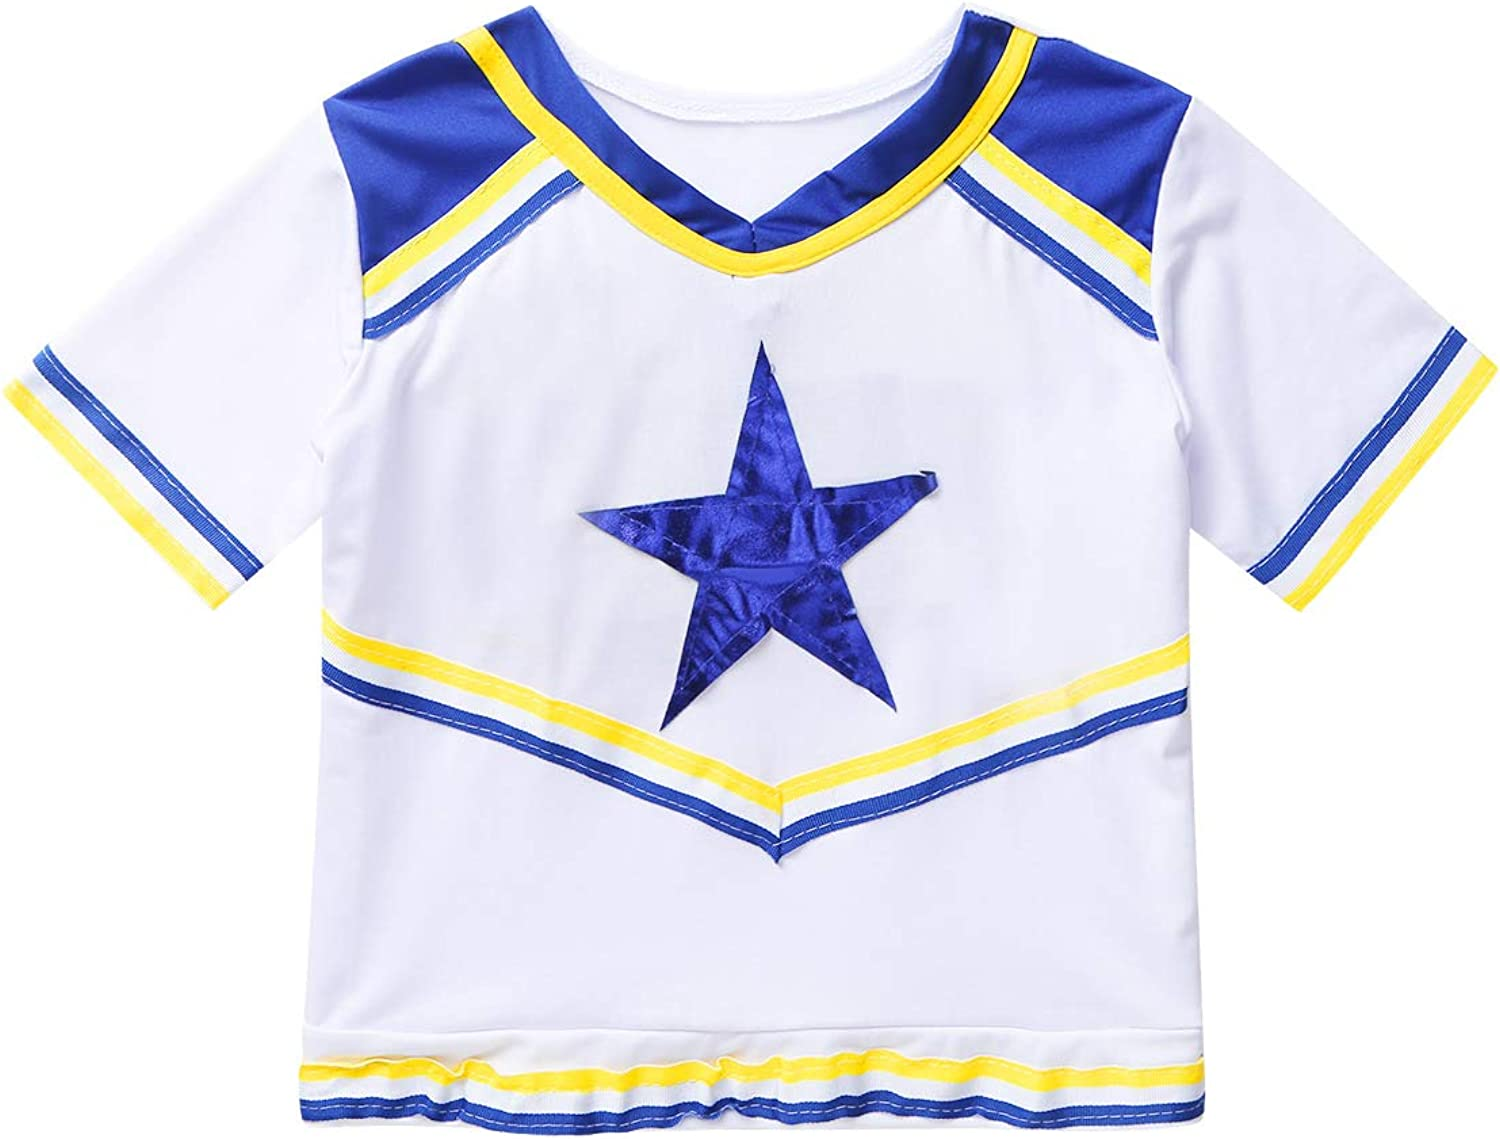 moily Girls Champion Cheerleading Rooter Team Uniform Shiny Star Top with Pleated Skirts Halloween Outfit